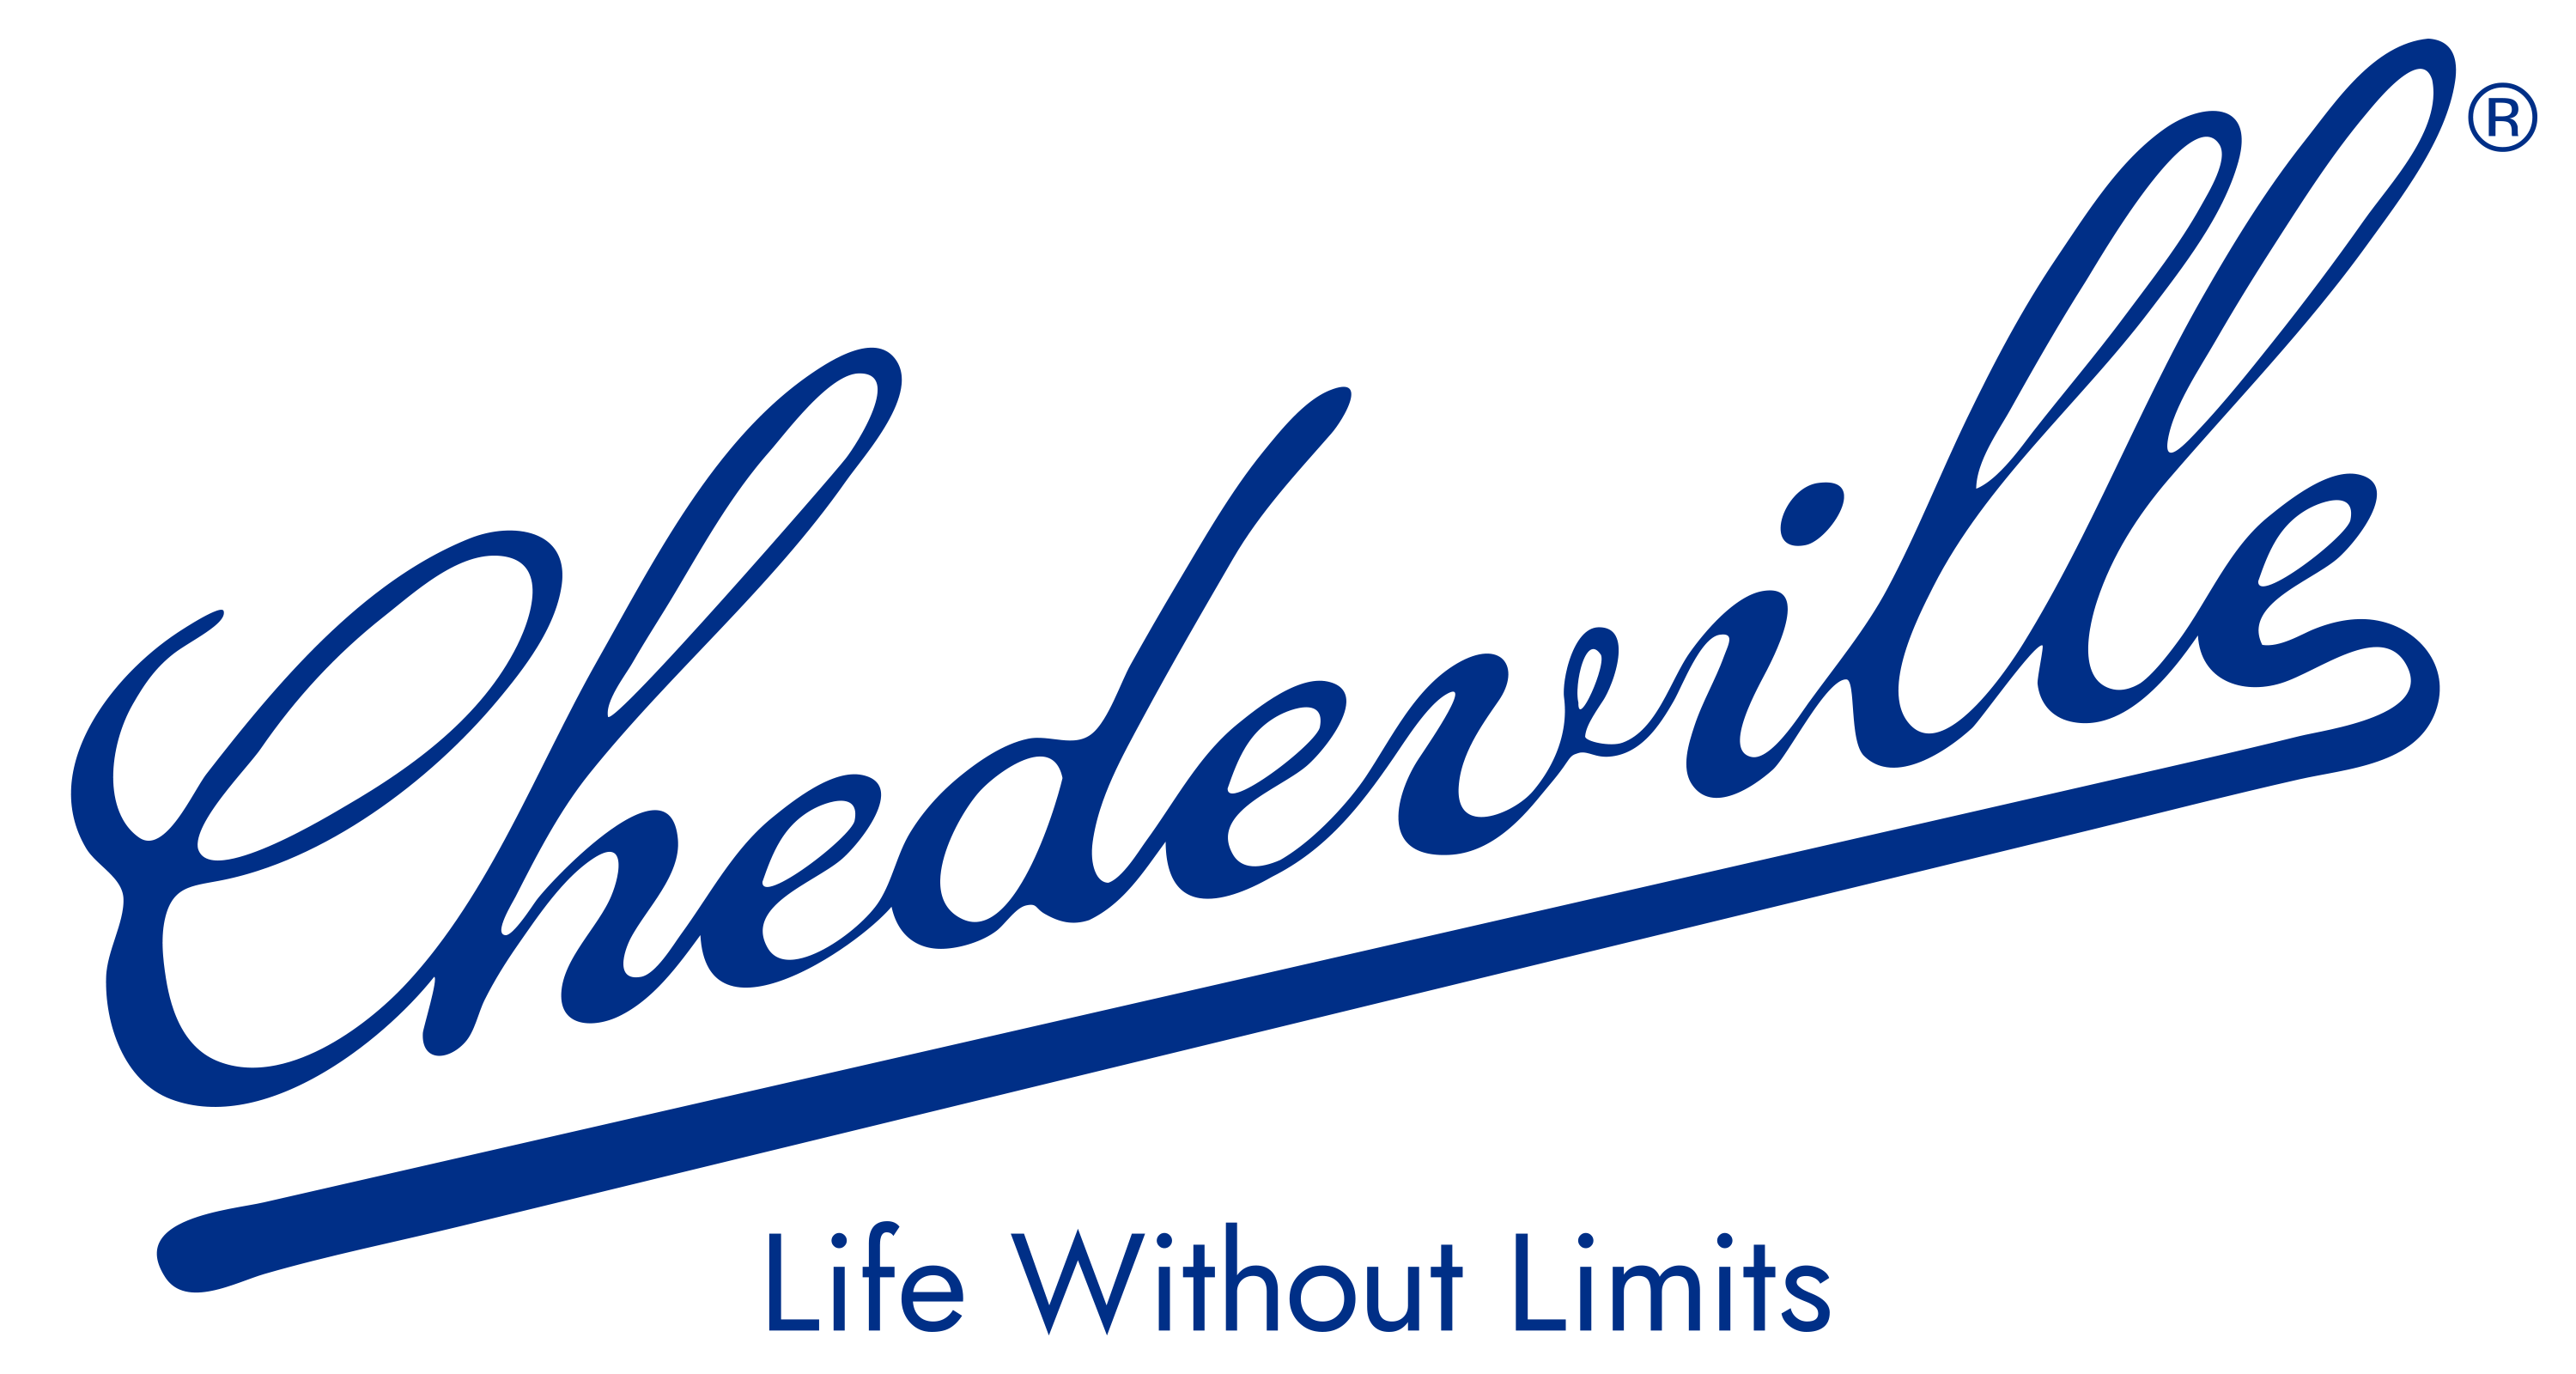 Chedeville